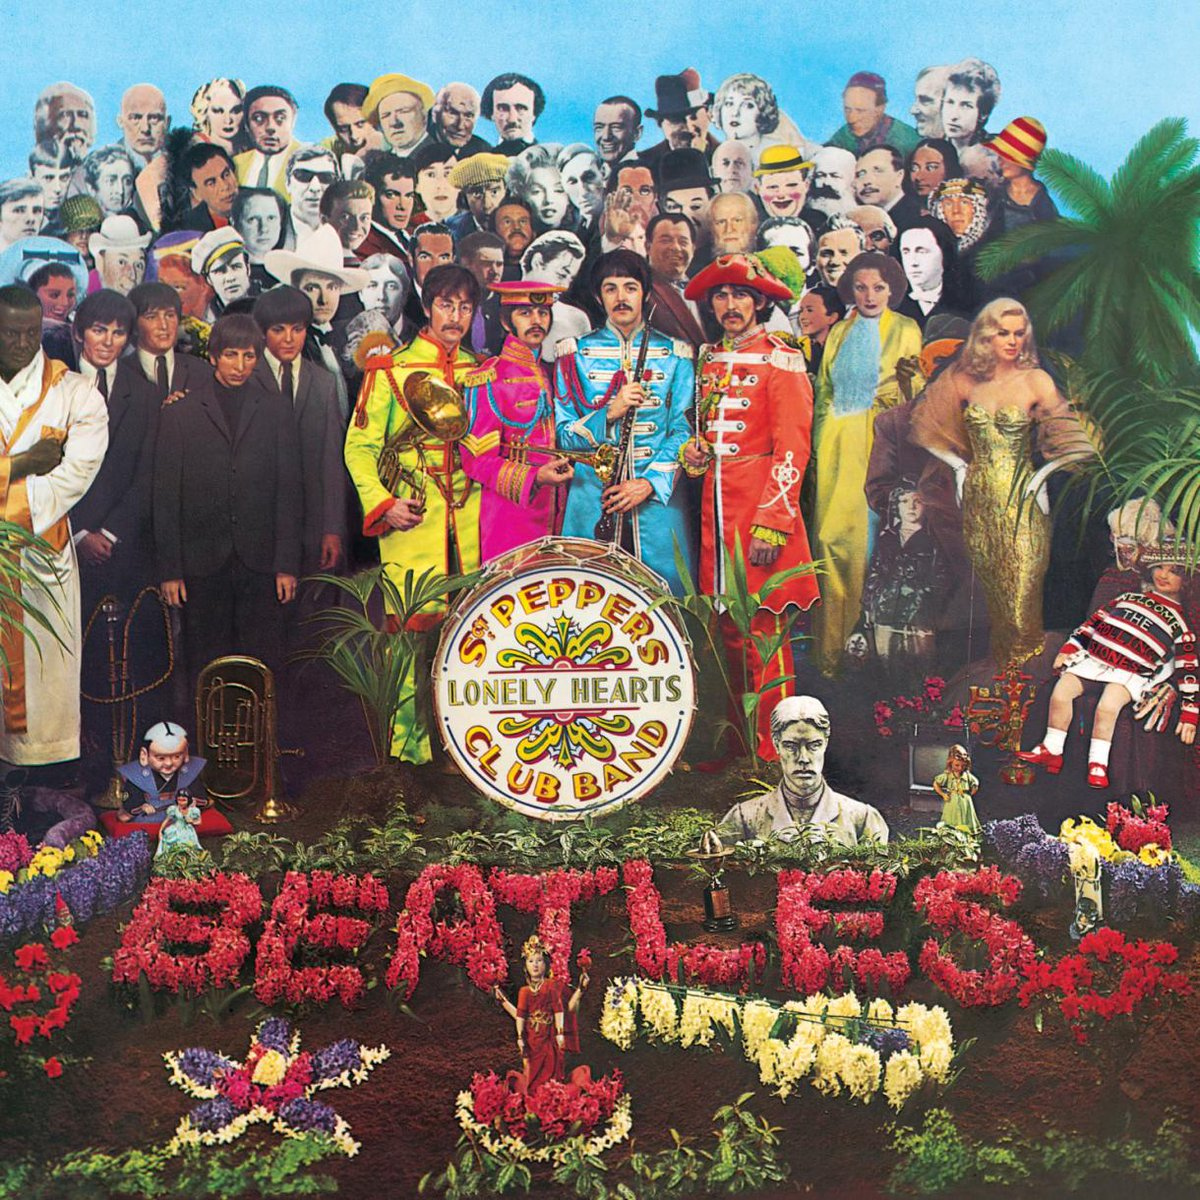 2 June 1967: The Beatles release their #album Sgt. Pepper's Lonely Hearts Club #Band in the United States. #TheBeatles #music #otd #rocknroll #history #ad https://amzn.to/2Mn7coB pic.twitter.com/TXnjtIDIP0